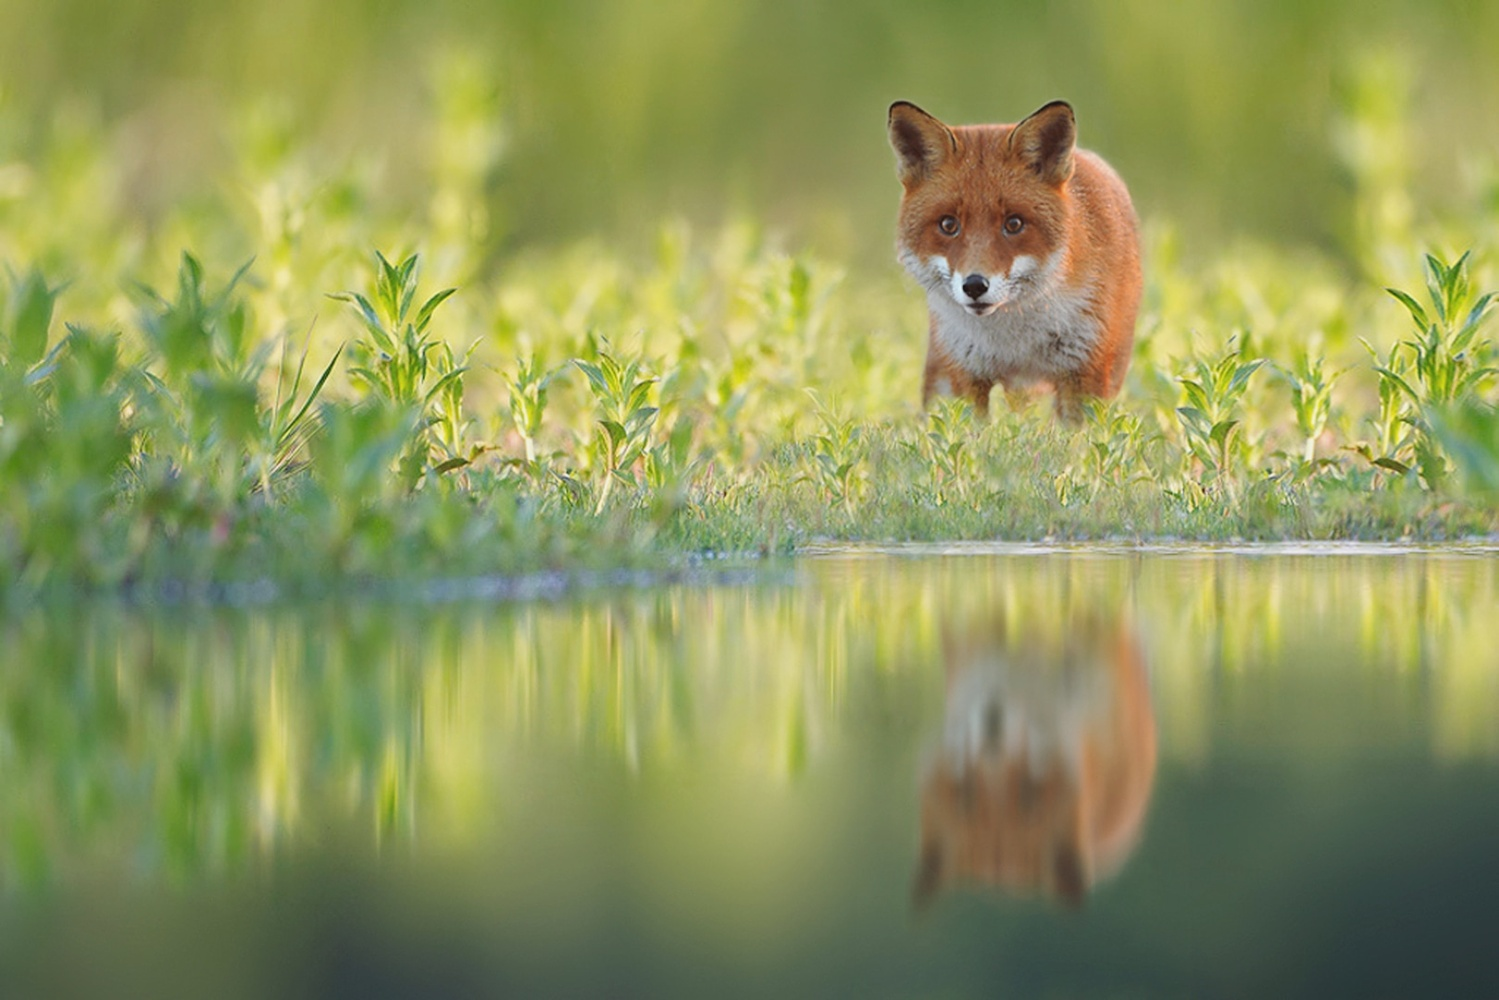 Reflection by Kevin Plovie